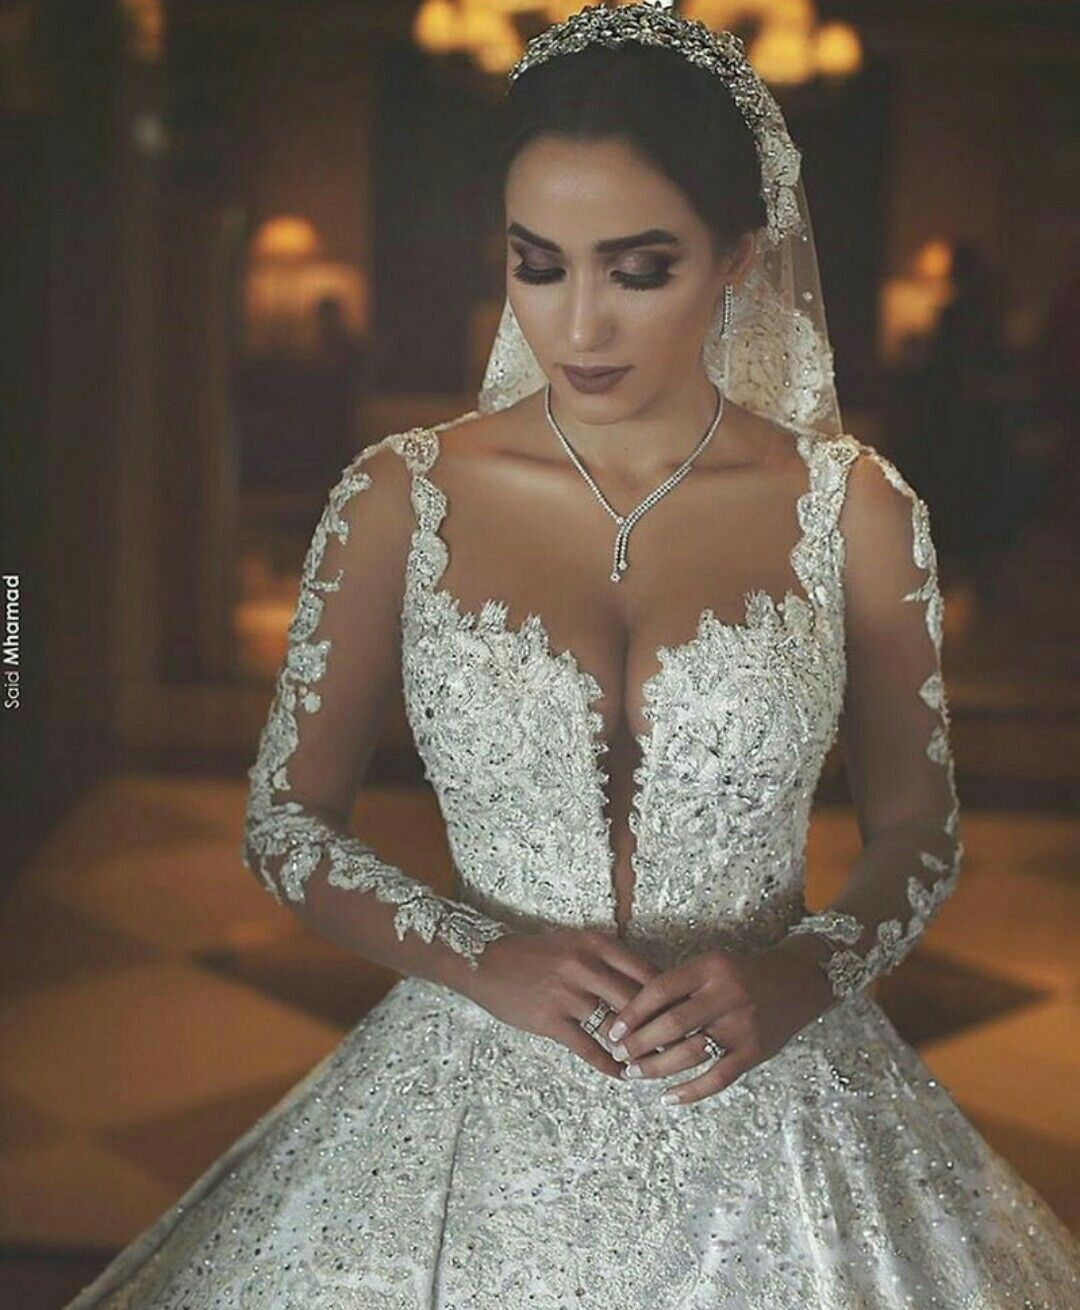 Pin by ❤ NoRmY ❤ on Novias.. | Pinterest | Wedding